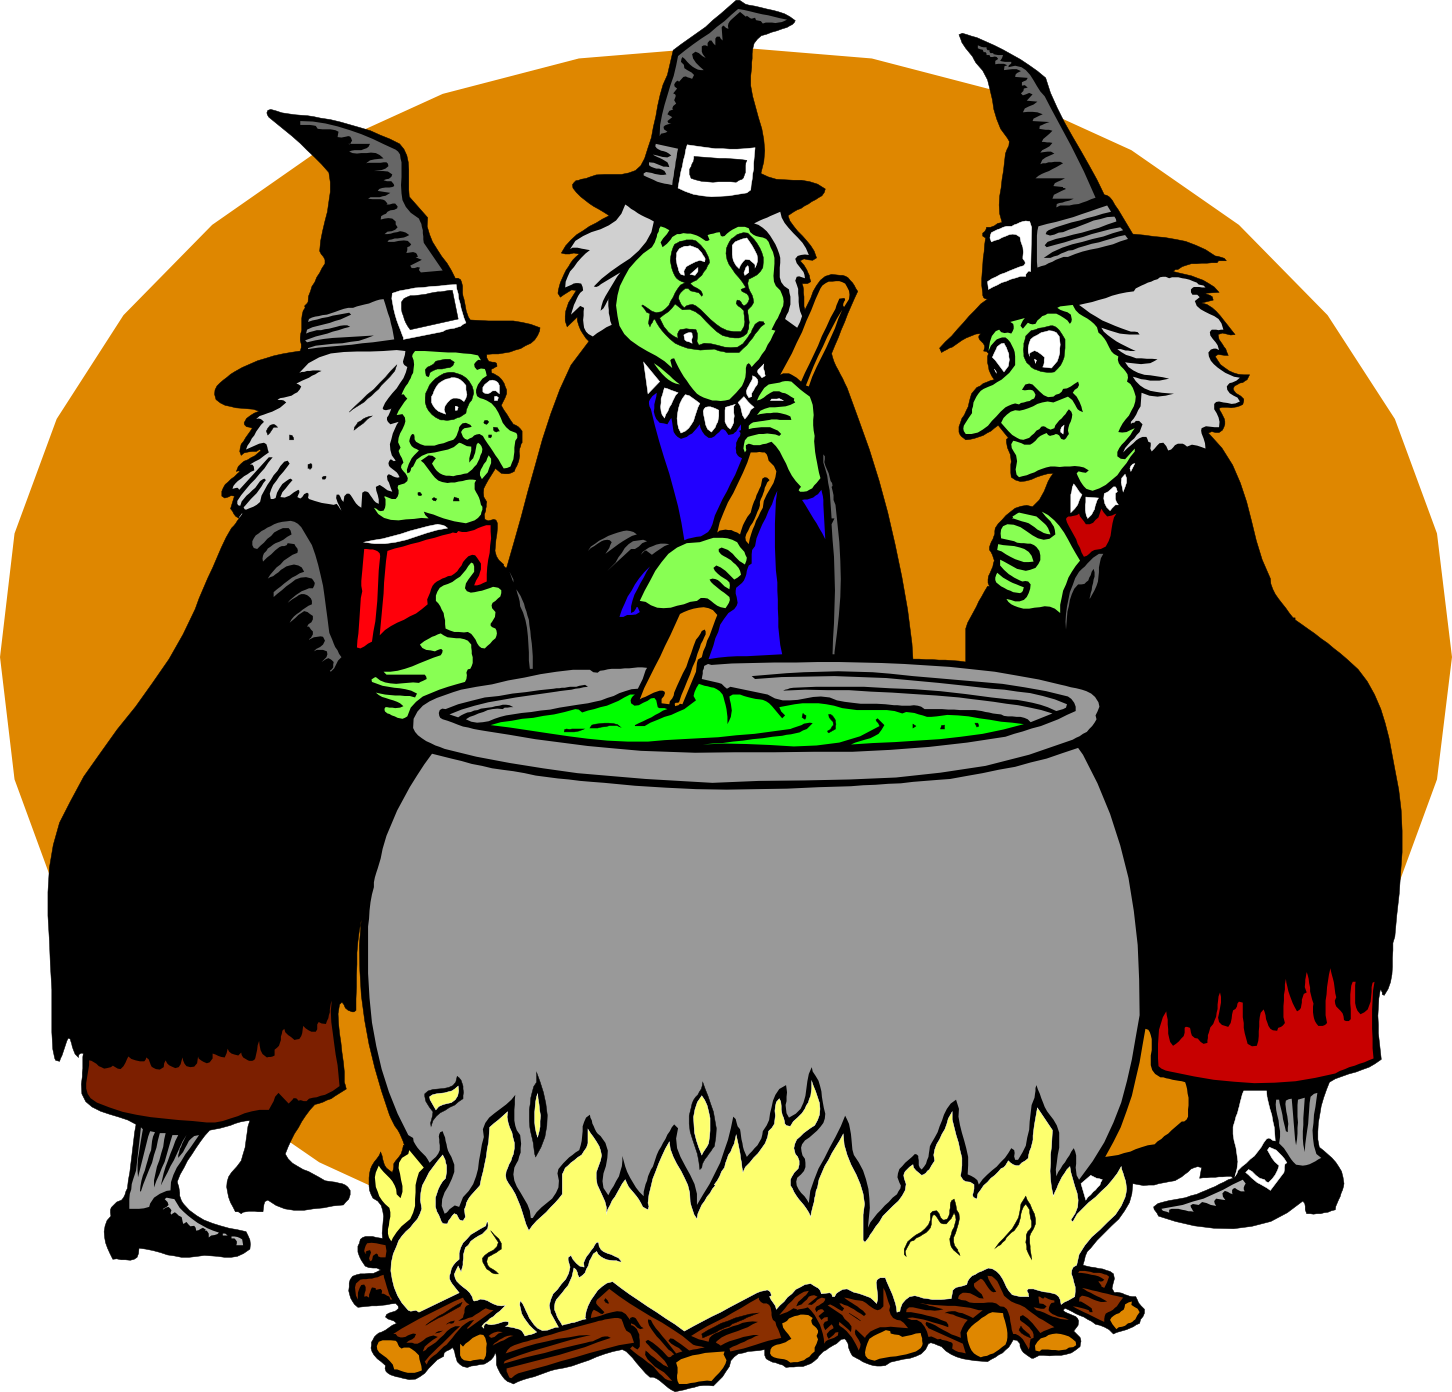 King clipart king duncan. Lady macbeth three witches